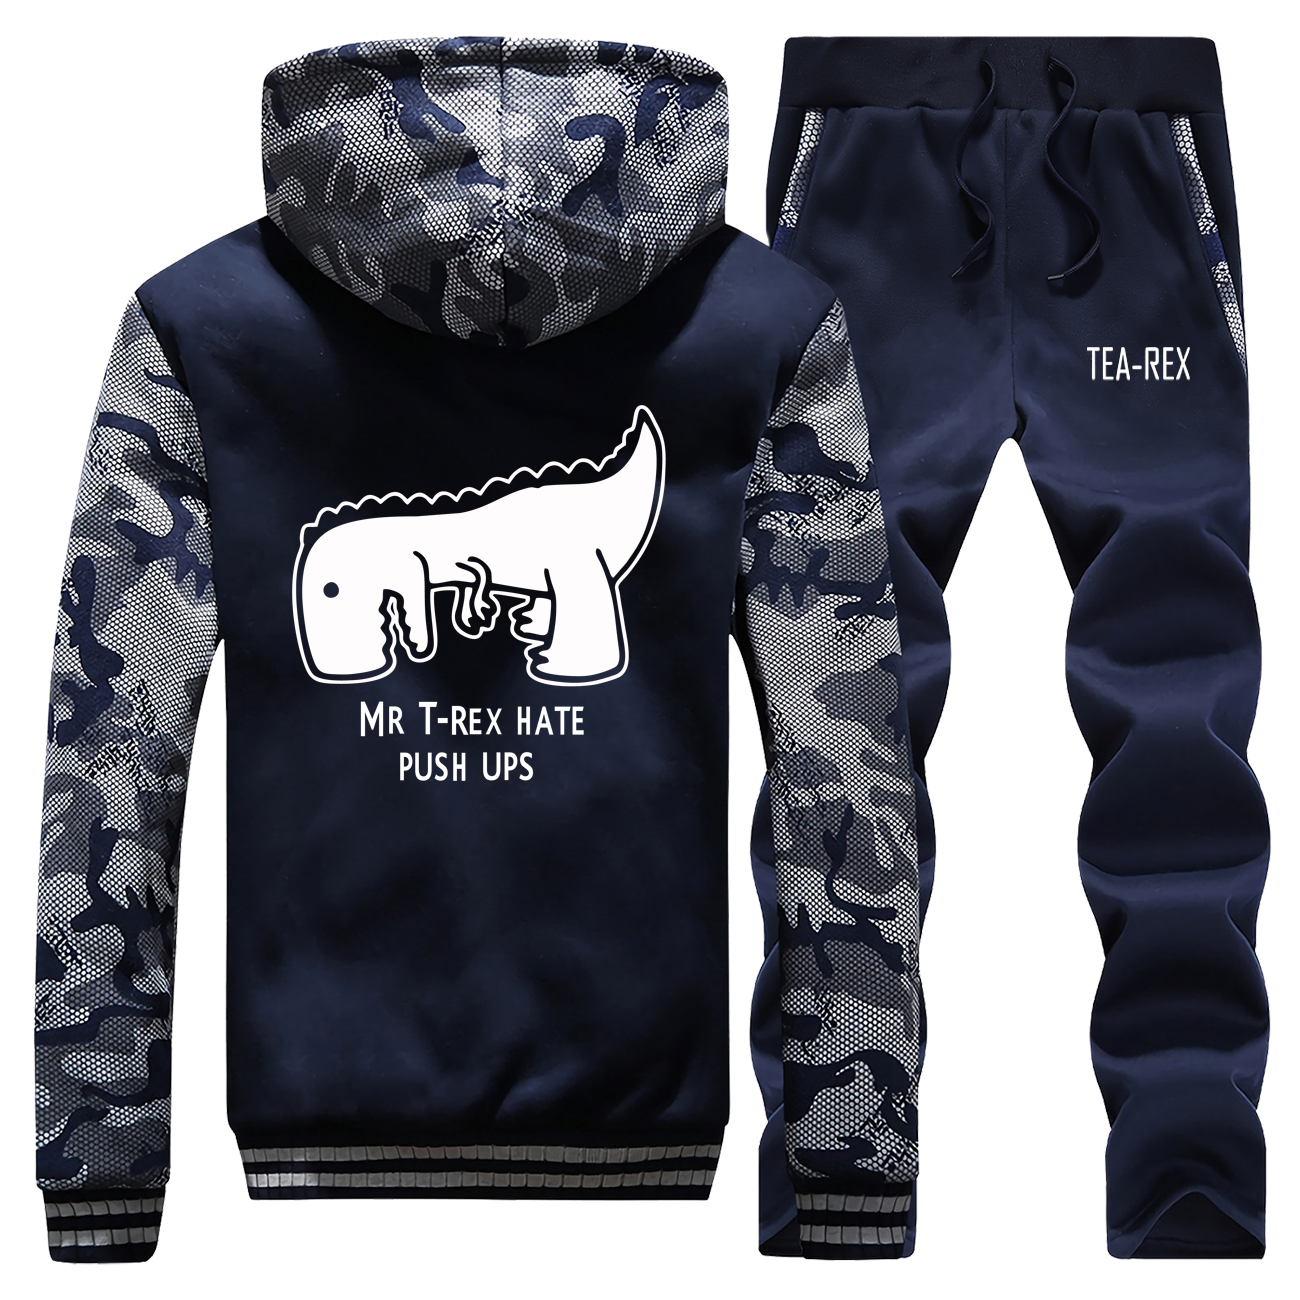 Mr T-rex Hate Push Ups Winter Jacket+Pants 2 Piece Sets Men Thick Fleece Hoodies Funny Print Camo Sweatshirt Casual Men Warm Set